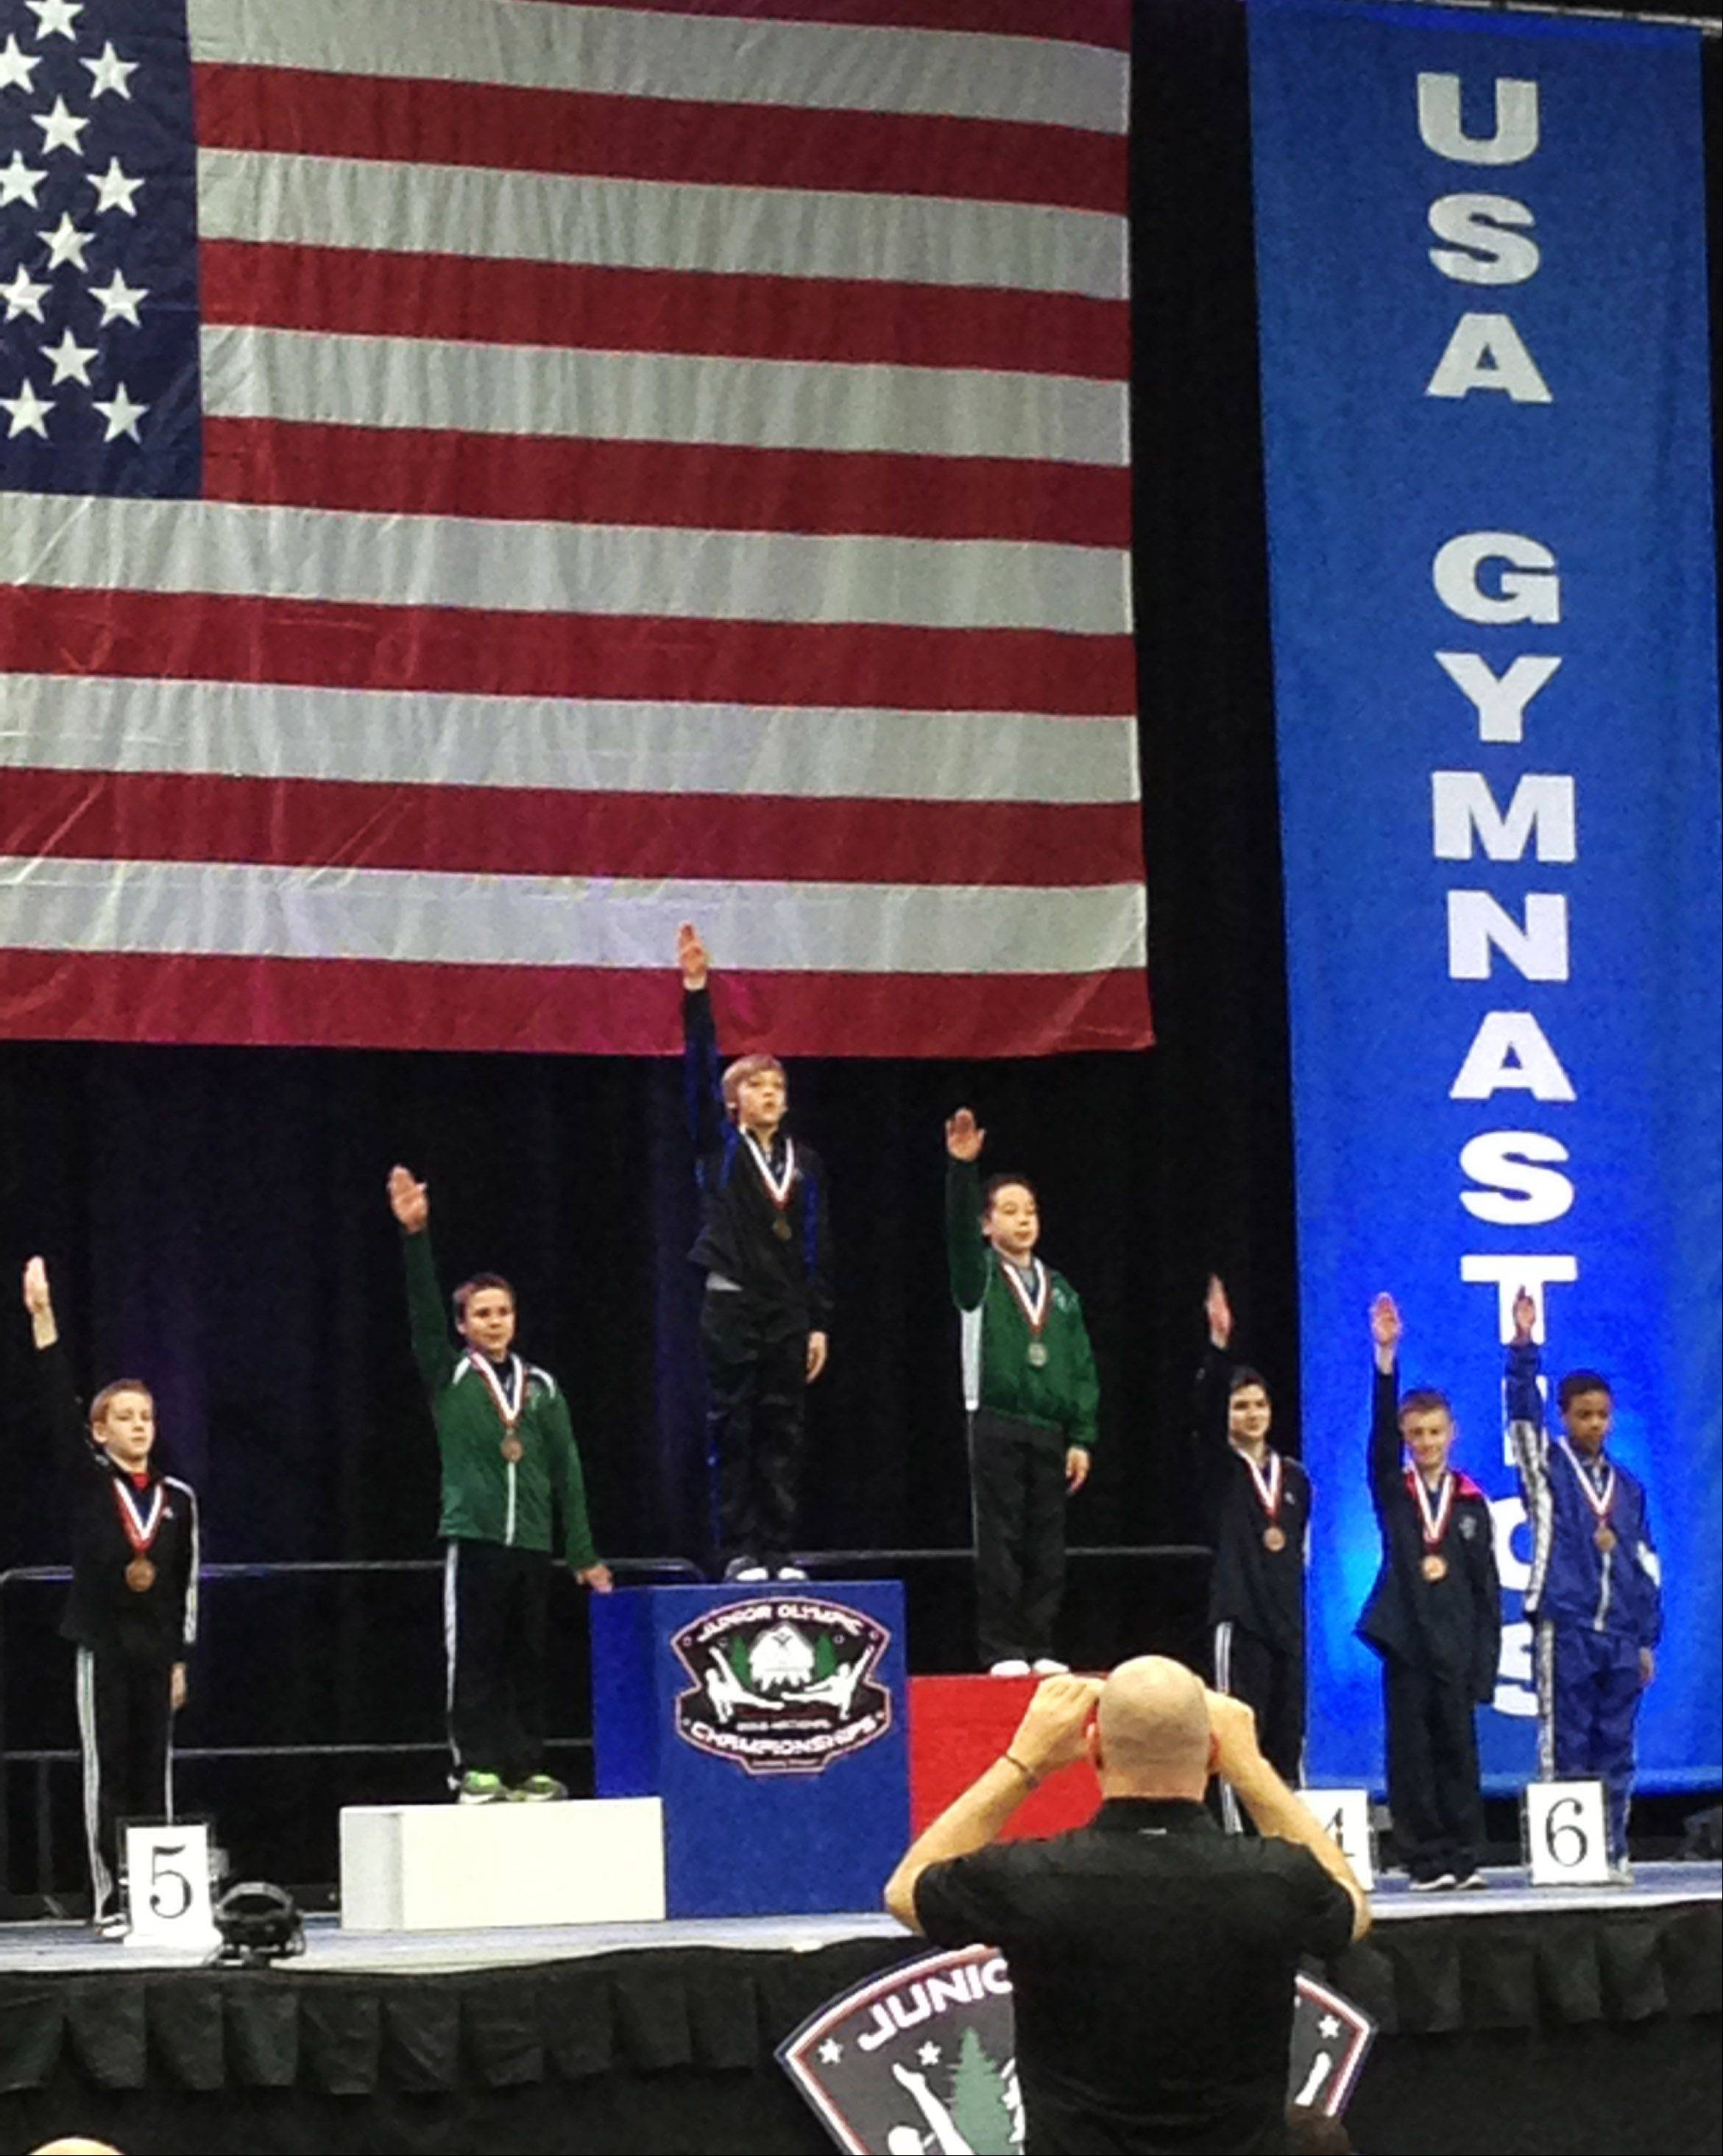 Austin Jones, 12, of St. Charles, took the gold medal in the vault in his age and level at the 2013 Junior Olympic Championships held in Portland, Ore. Austin, a gymnast with St. Charles Gymnastics Academy, also took 5th place in the parallel bars and 15th all around.